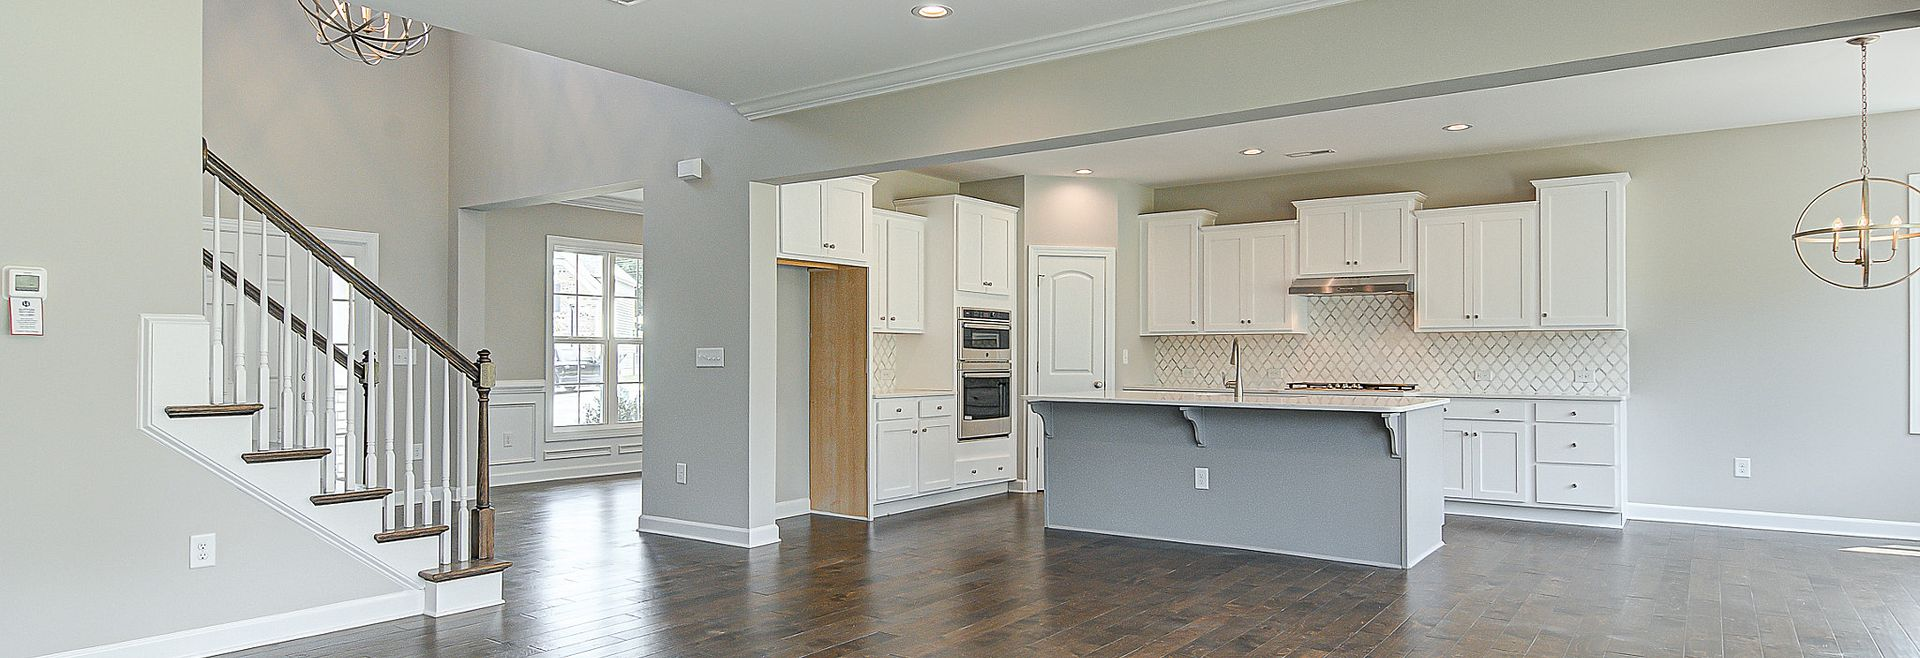 Verona plan Kitchen & Family Room